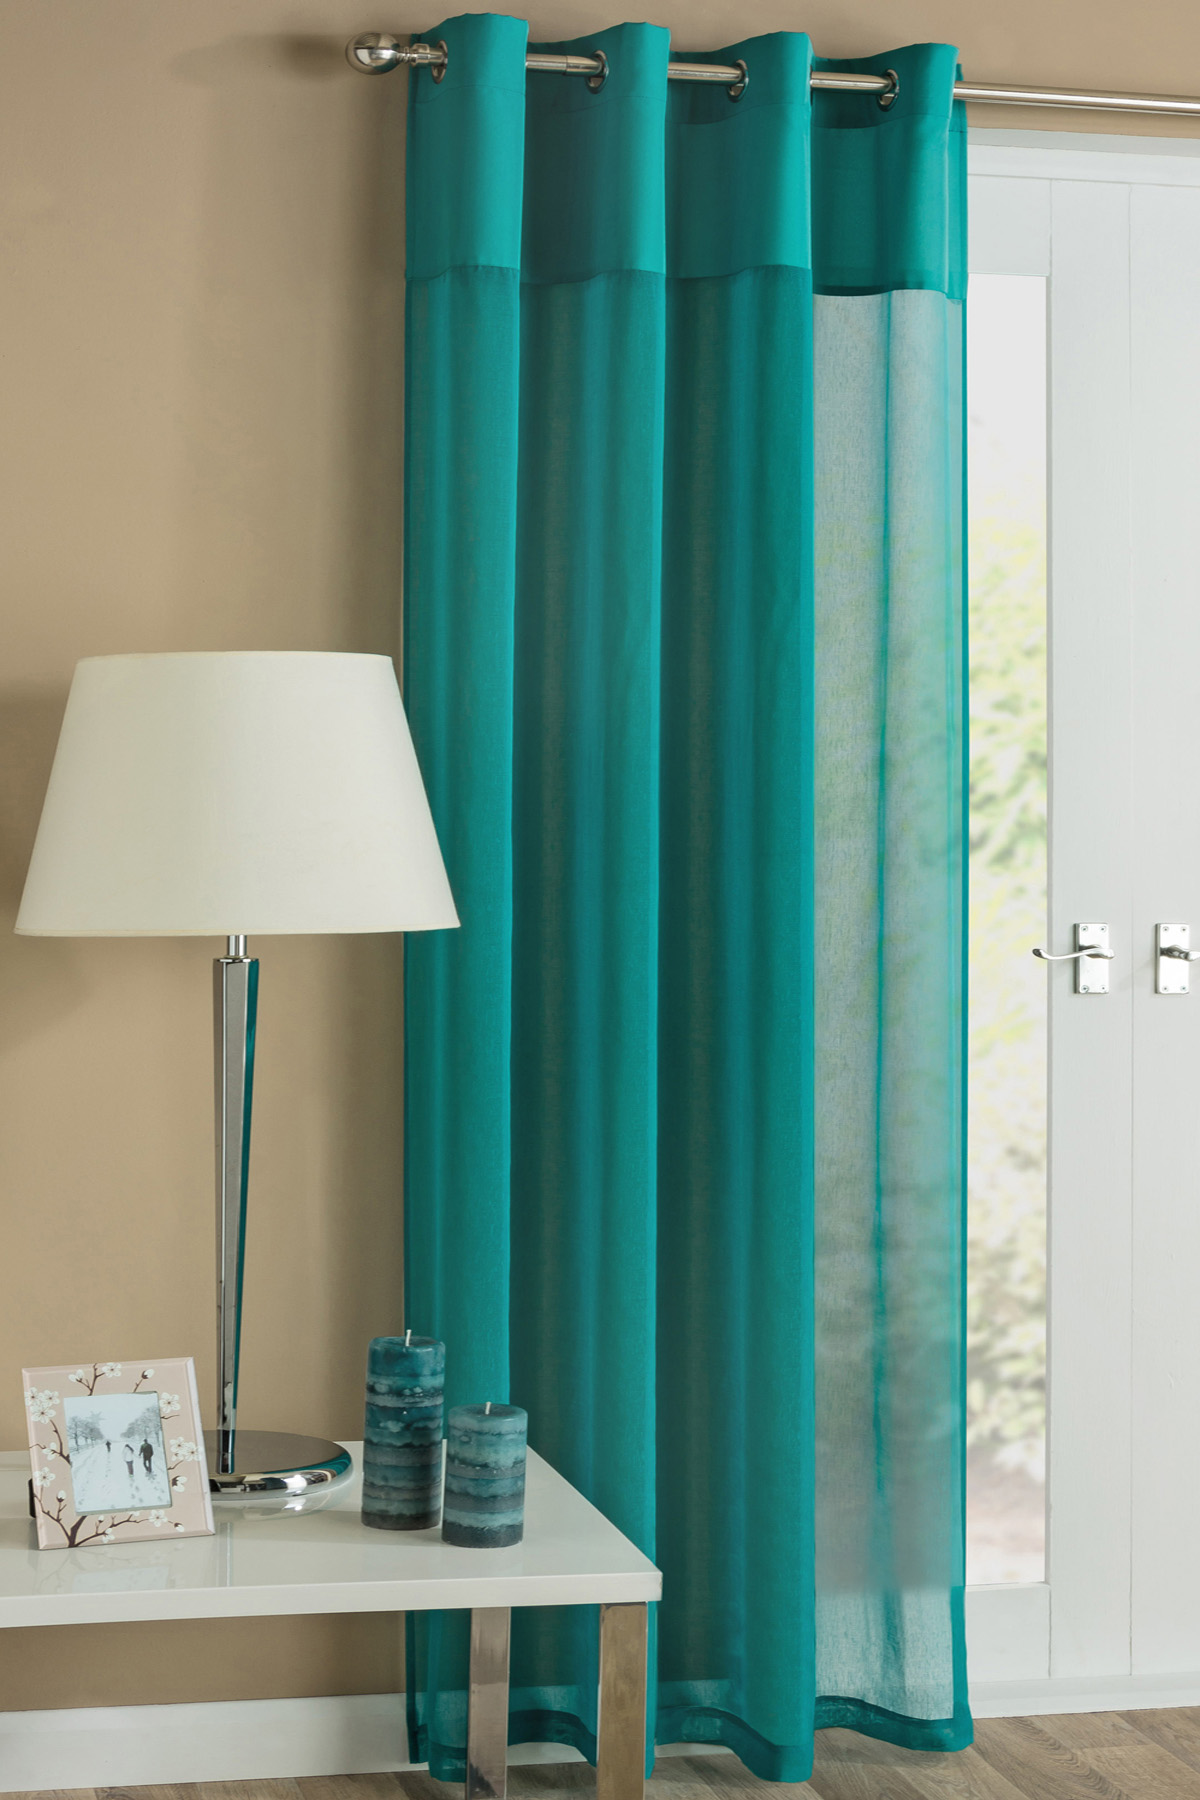 Stockists of Teal Rio Eyelet Voile Panel